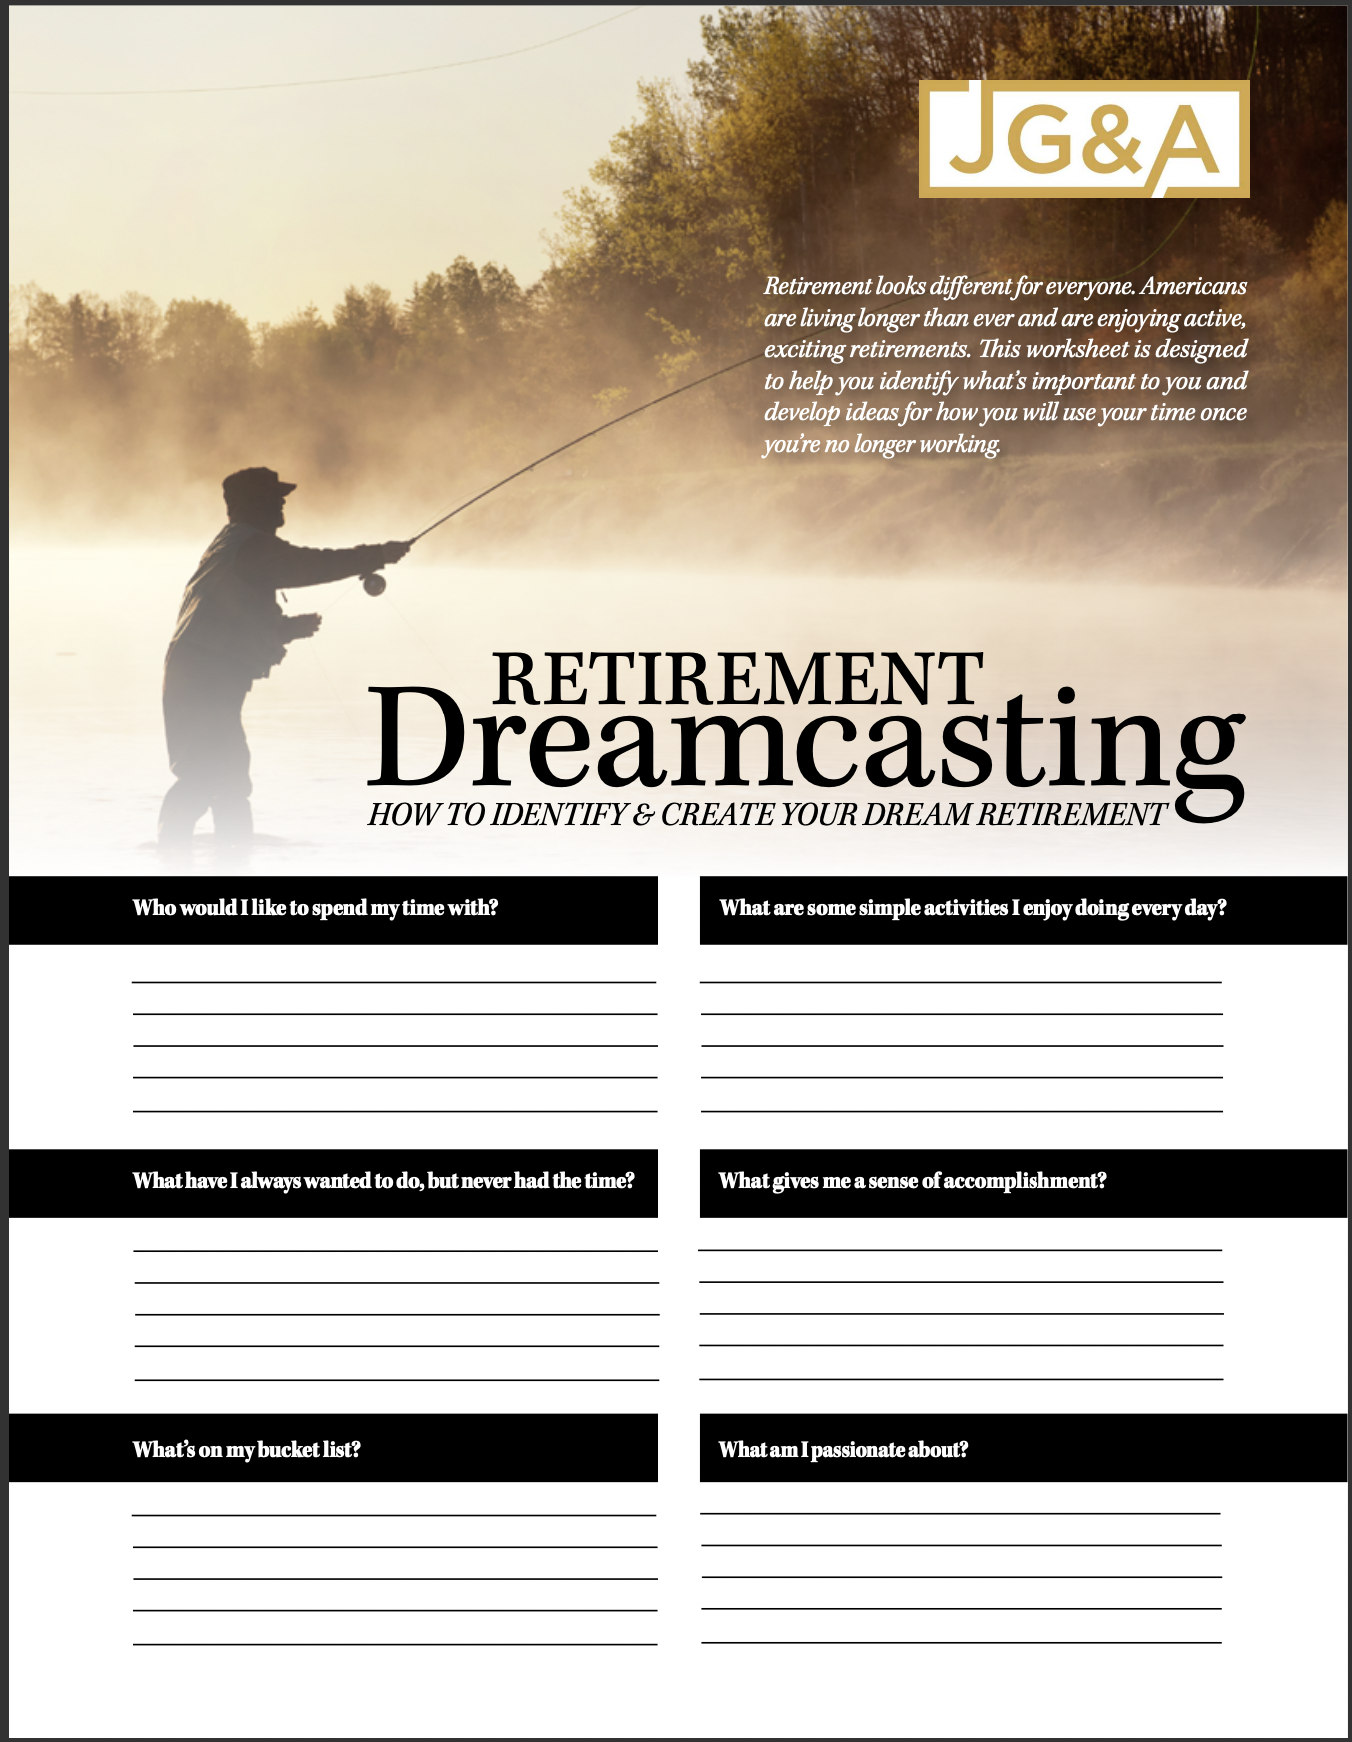 Retirement Dreamcasting: How to Identify & Create Your Dream Retirement Thumbnail